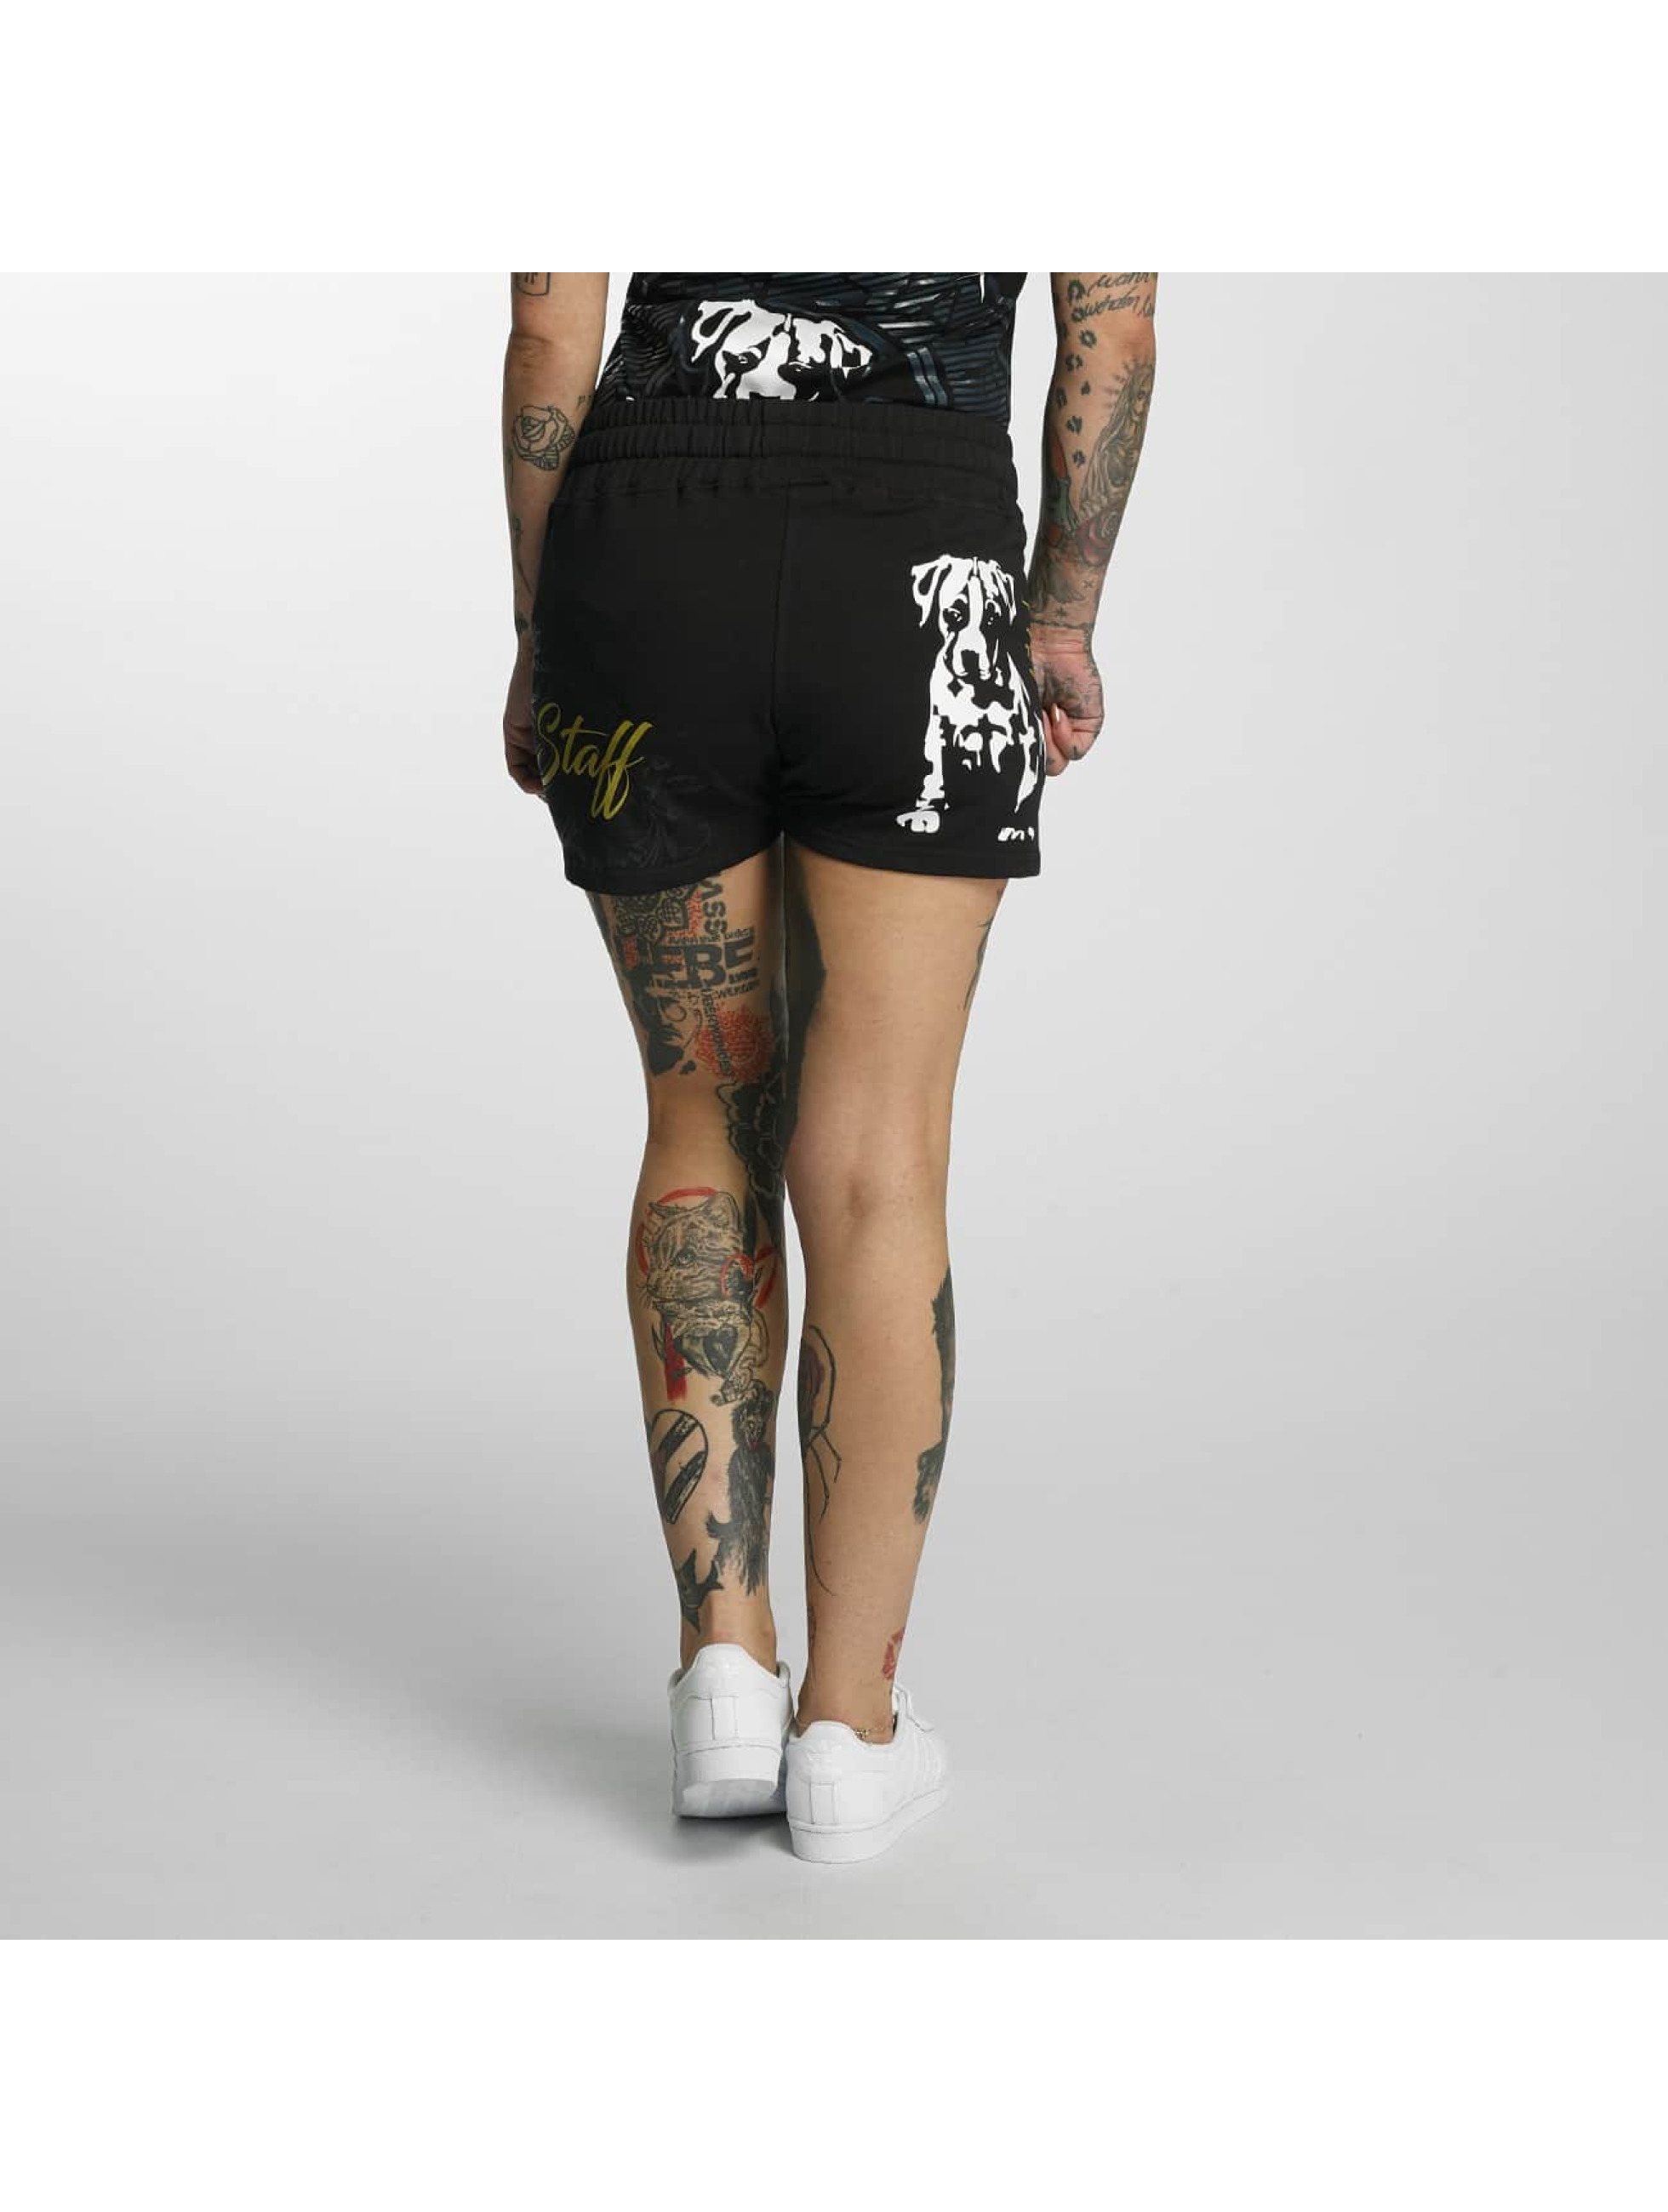 Babystaff Short Feos black